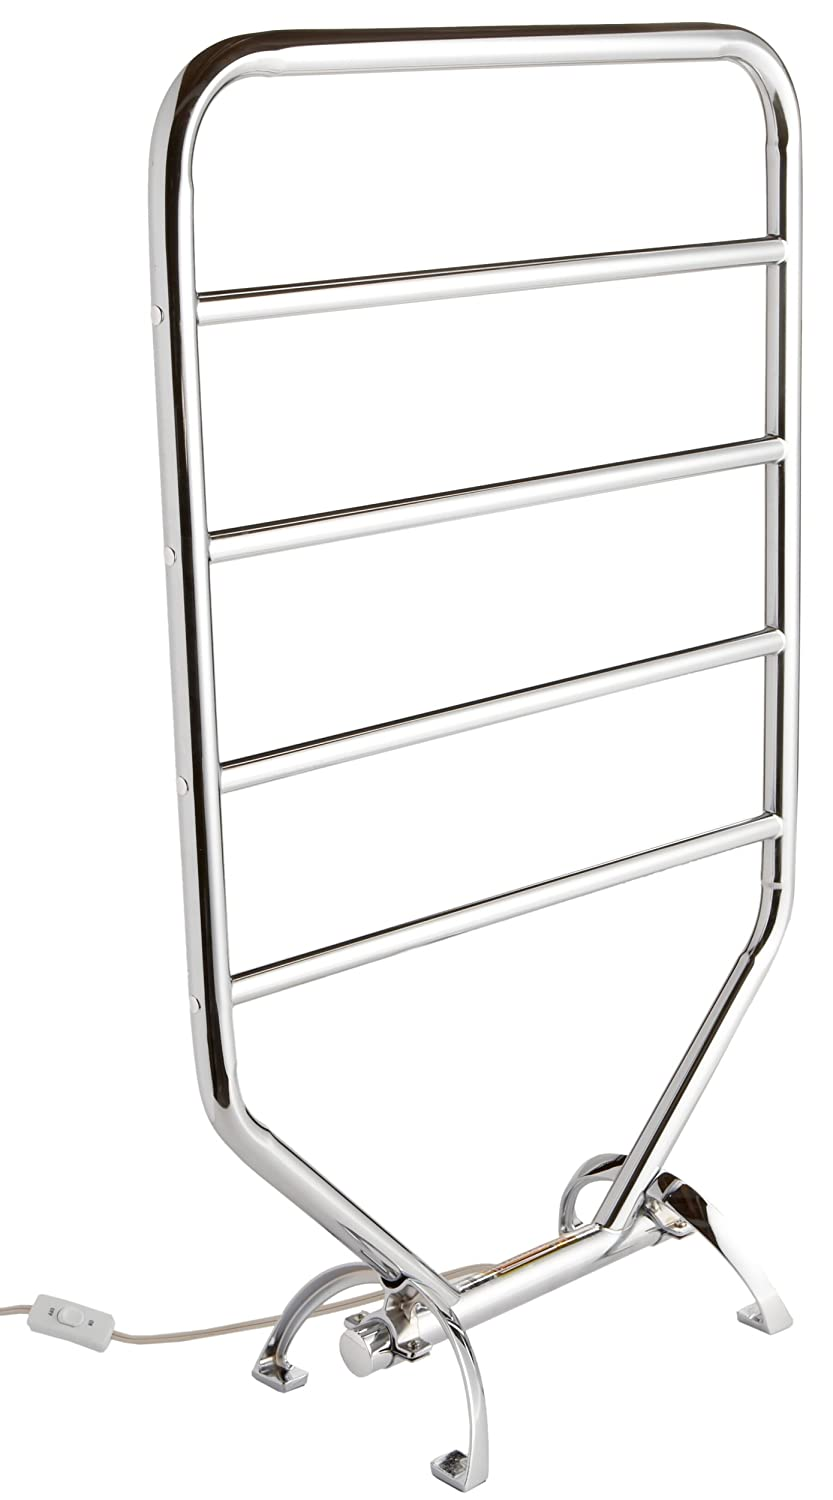 Com Warmrails Rtc Mid Size Wall Mounted Or Floor Standing Towel Warmer 34 Inch Chrome Finish Home Kitchen